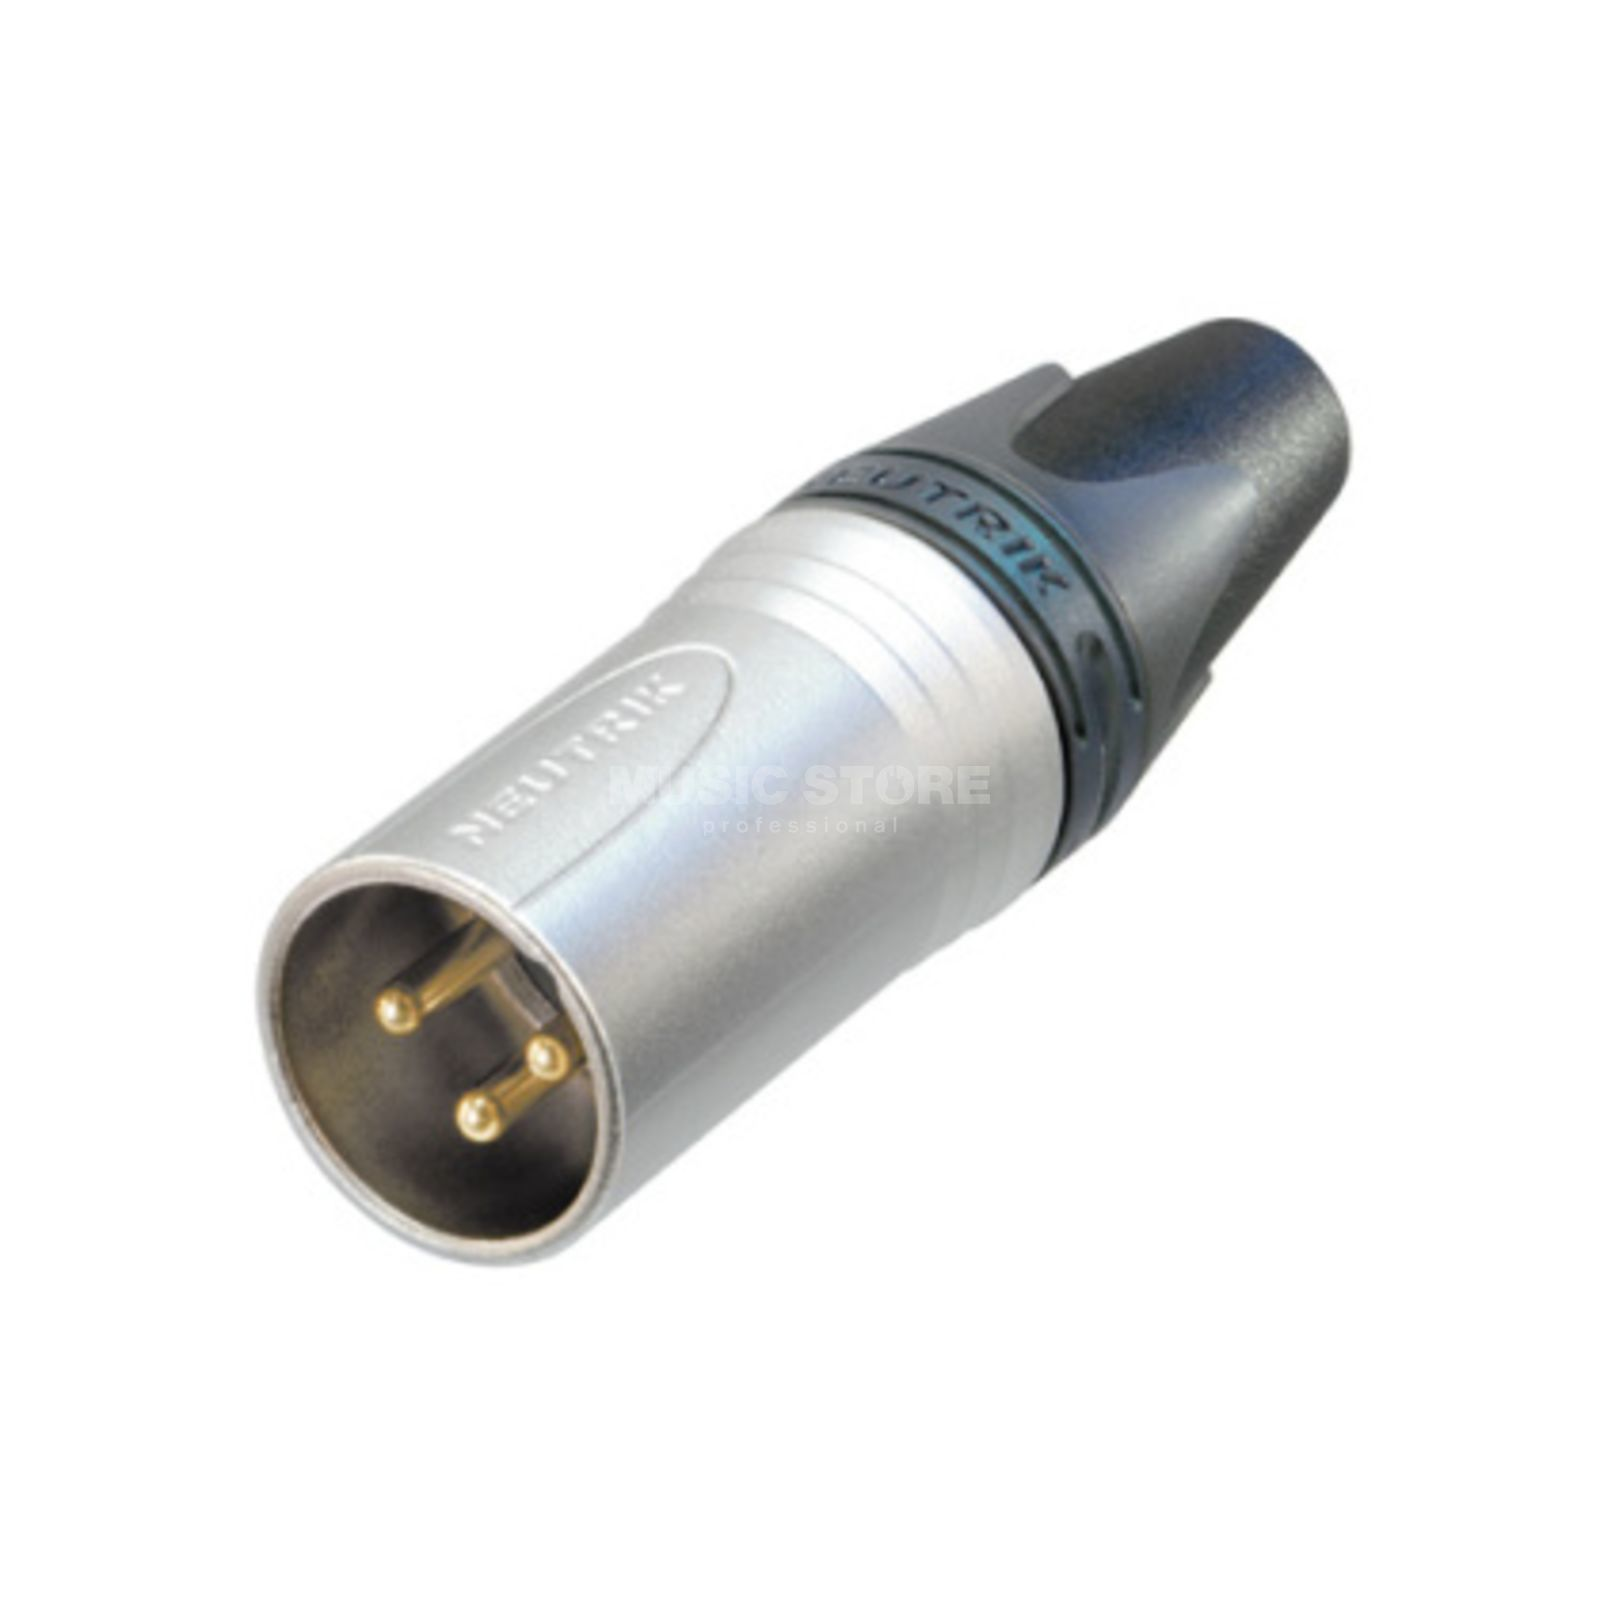 Neutrik NC3MXX-HE Cable Connector male, 3-pole Produktbillede